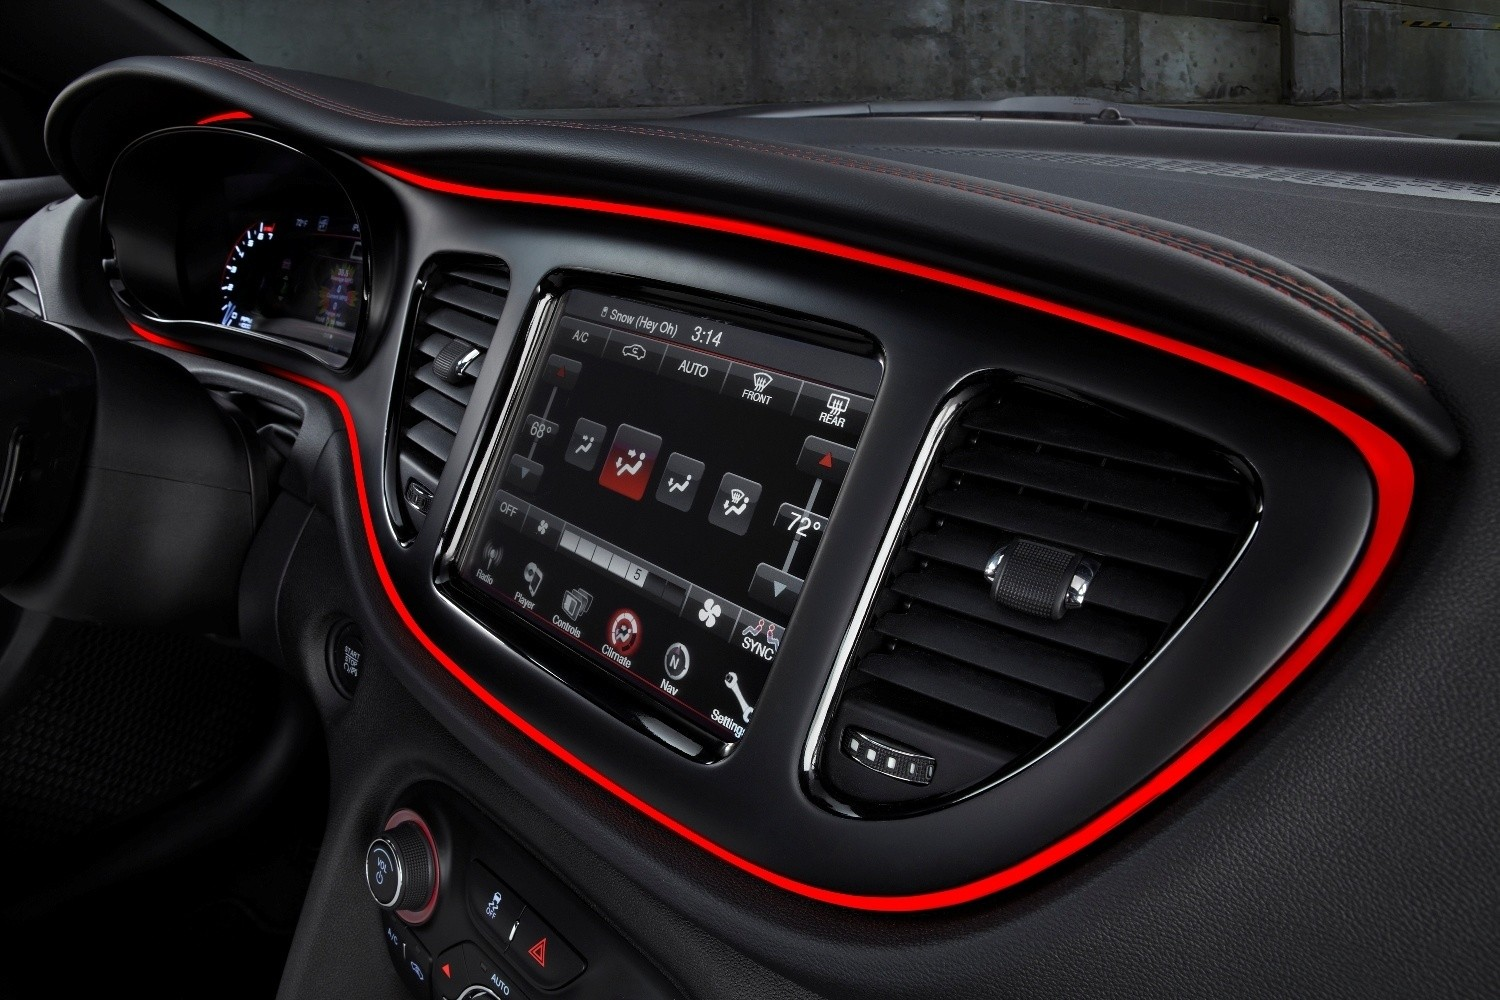 Update1 2014 Dodge Dart Is Low And Wide Engines Eager For Better Hp Via Tuning Scat Pack